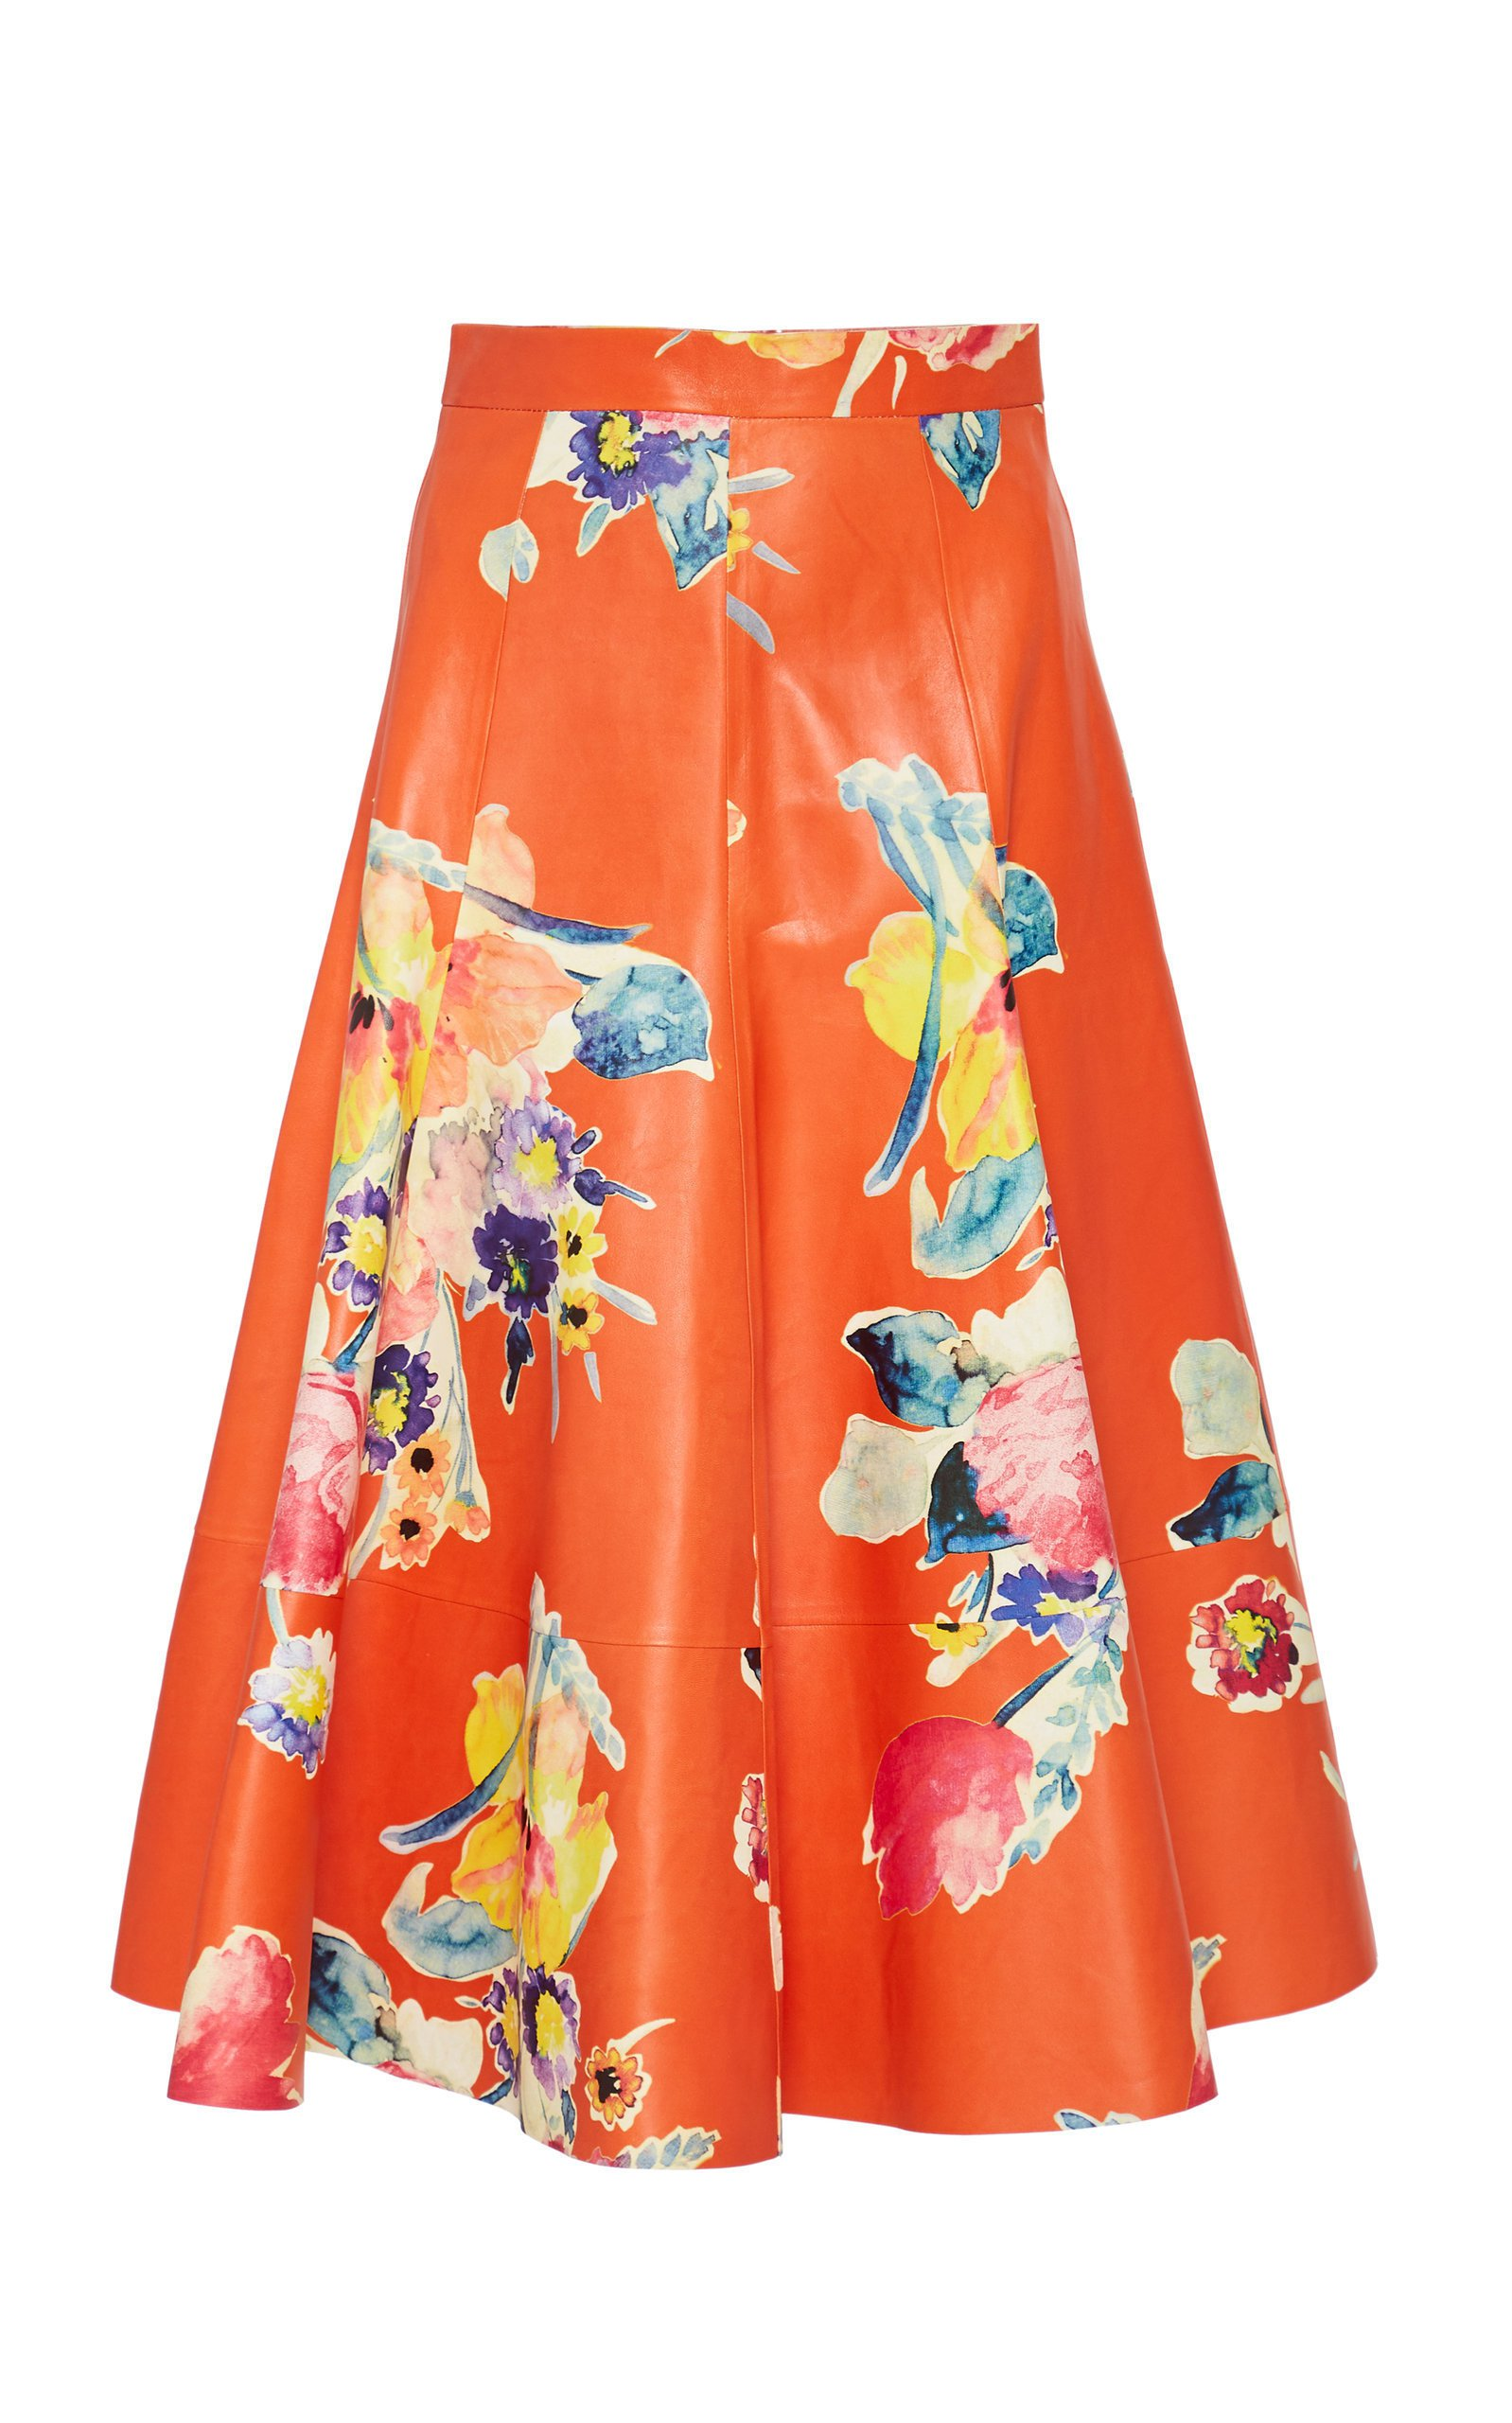 Ralph Lauren Clyde Floral Leather A-Line Skirt